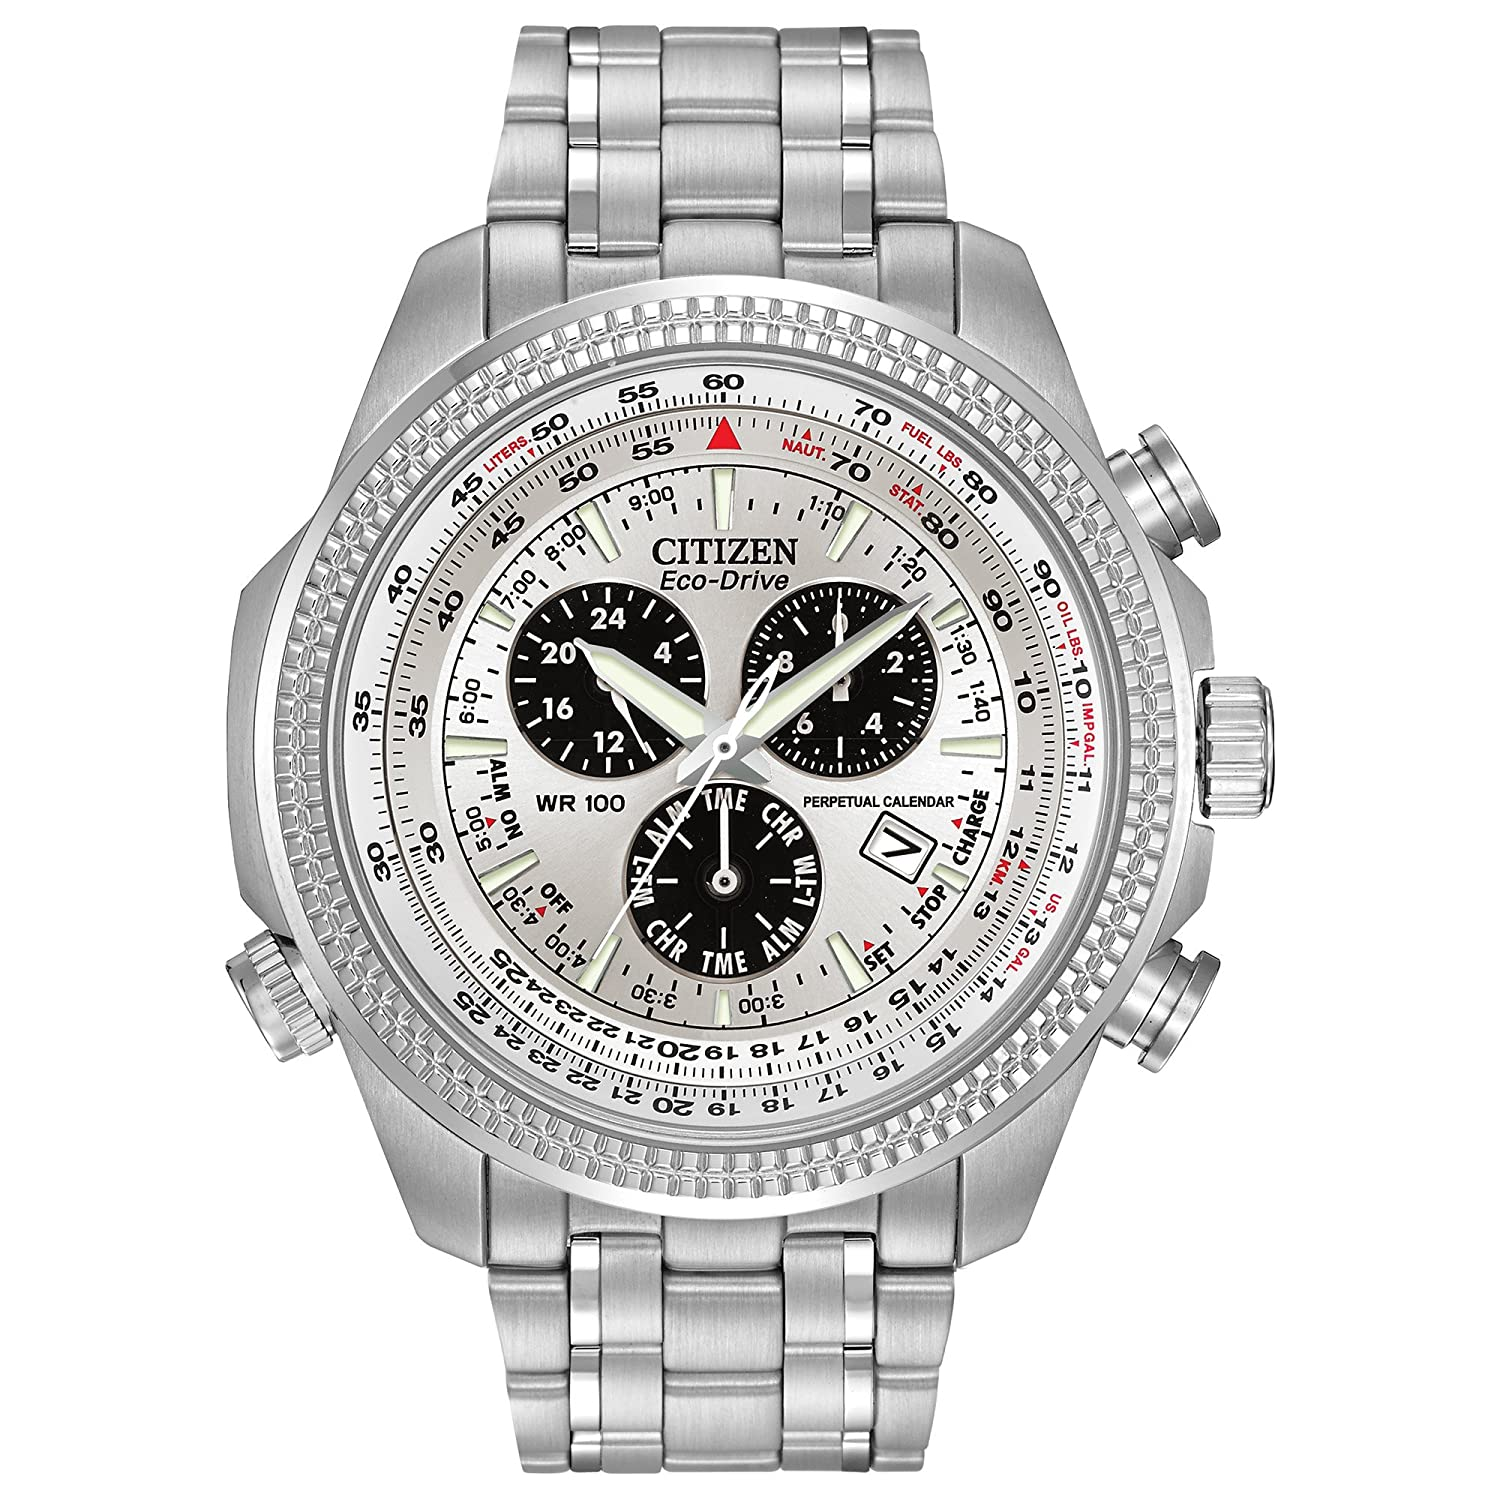 Citizen Men s Eco-Drive Chronograph Watch with Perpetual Calendar and Date, BL5400-52A